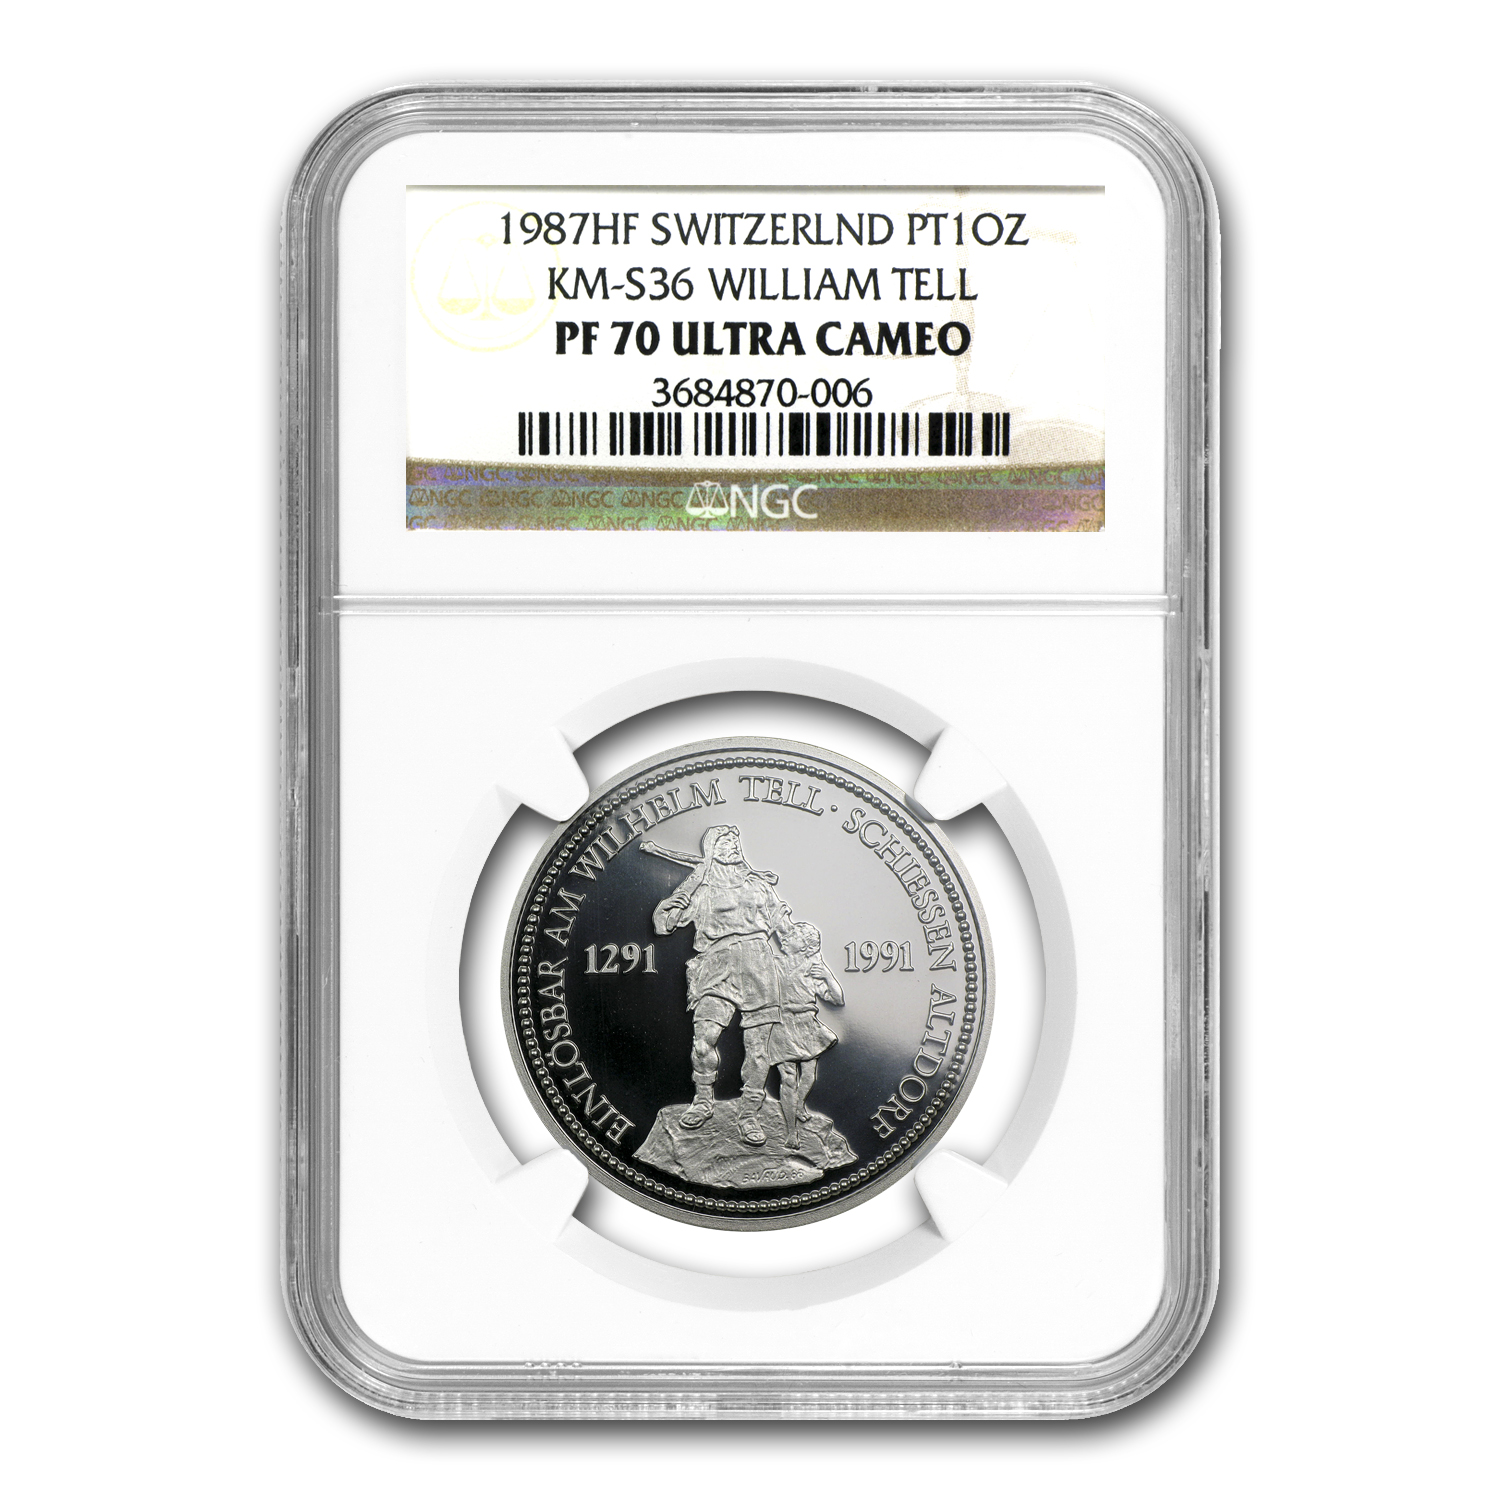 1987 Switzerland 1 oz Proof Platinum William Tell PF-70 NGC